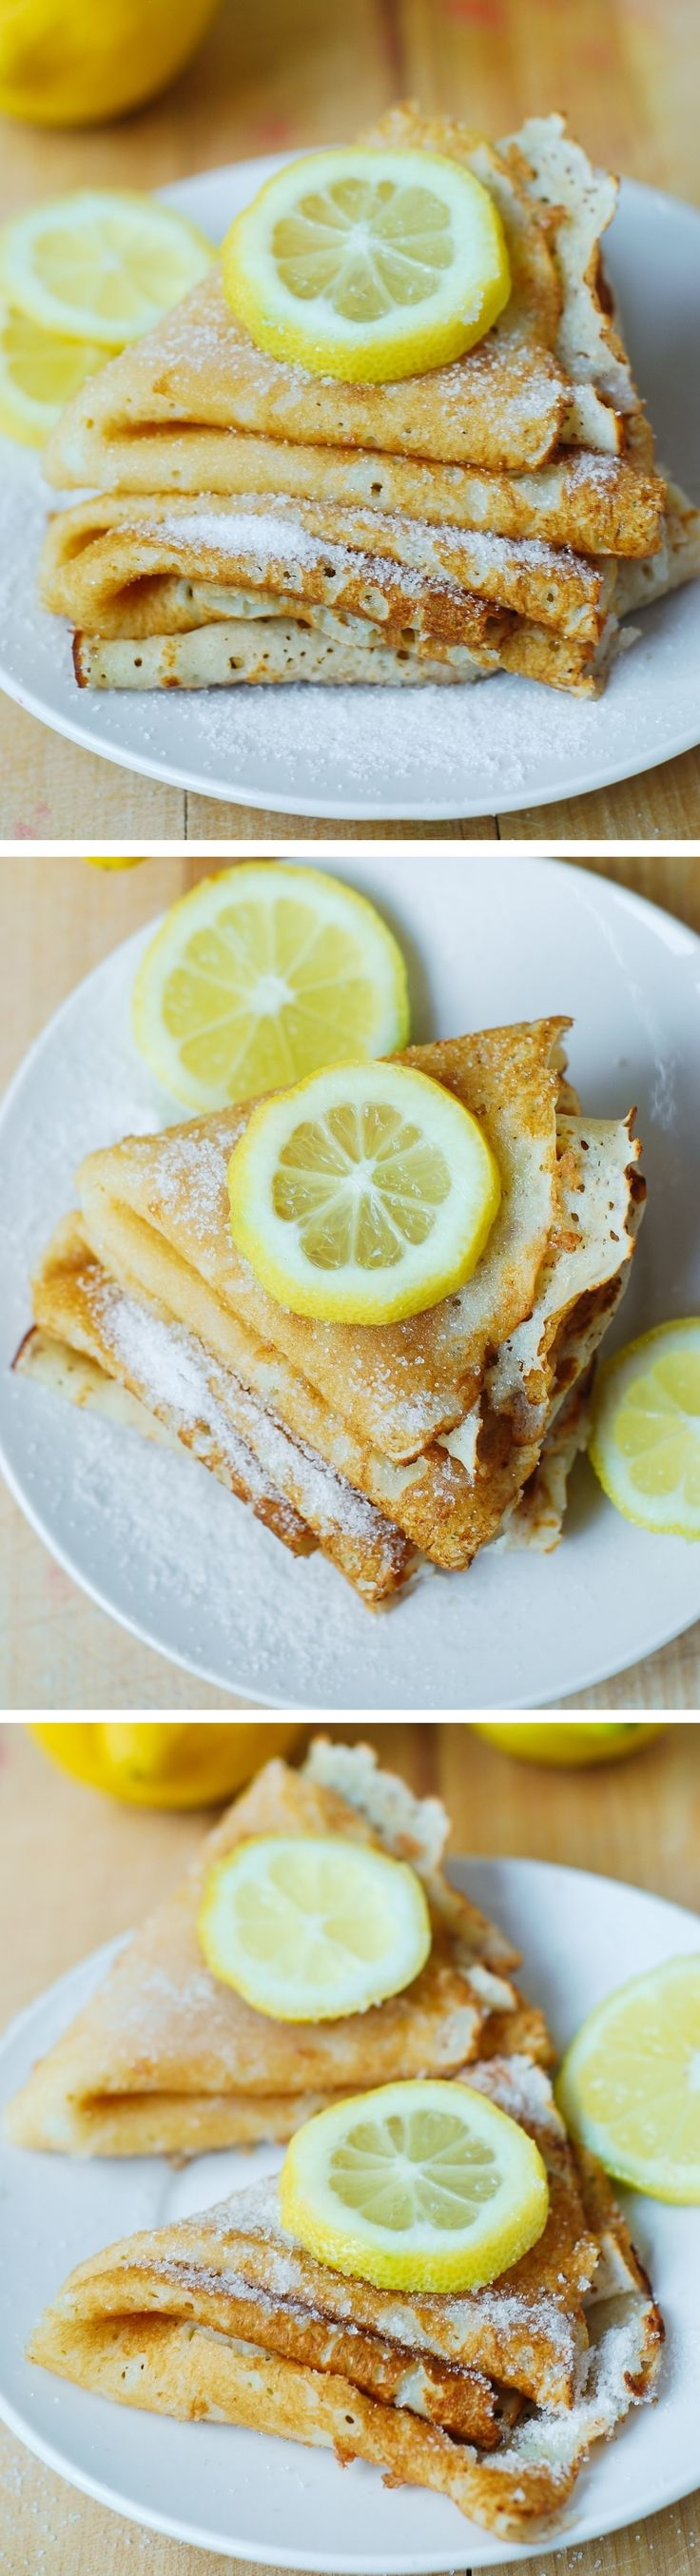 Lemon Sugar Gluten Free Dessert Crepes - easy-to-make and so delicious!